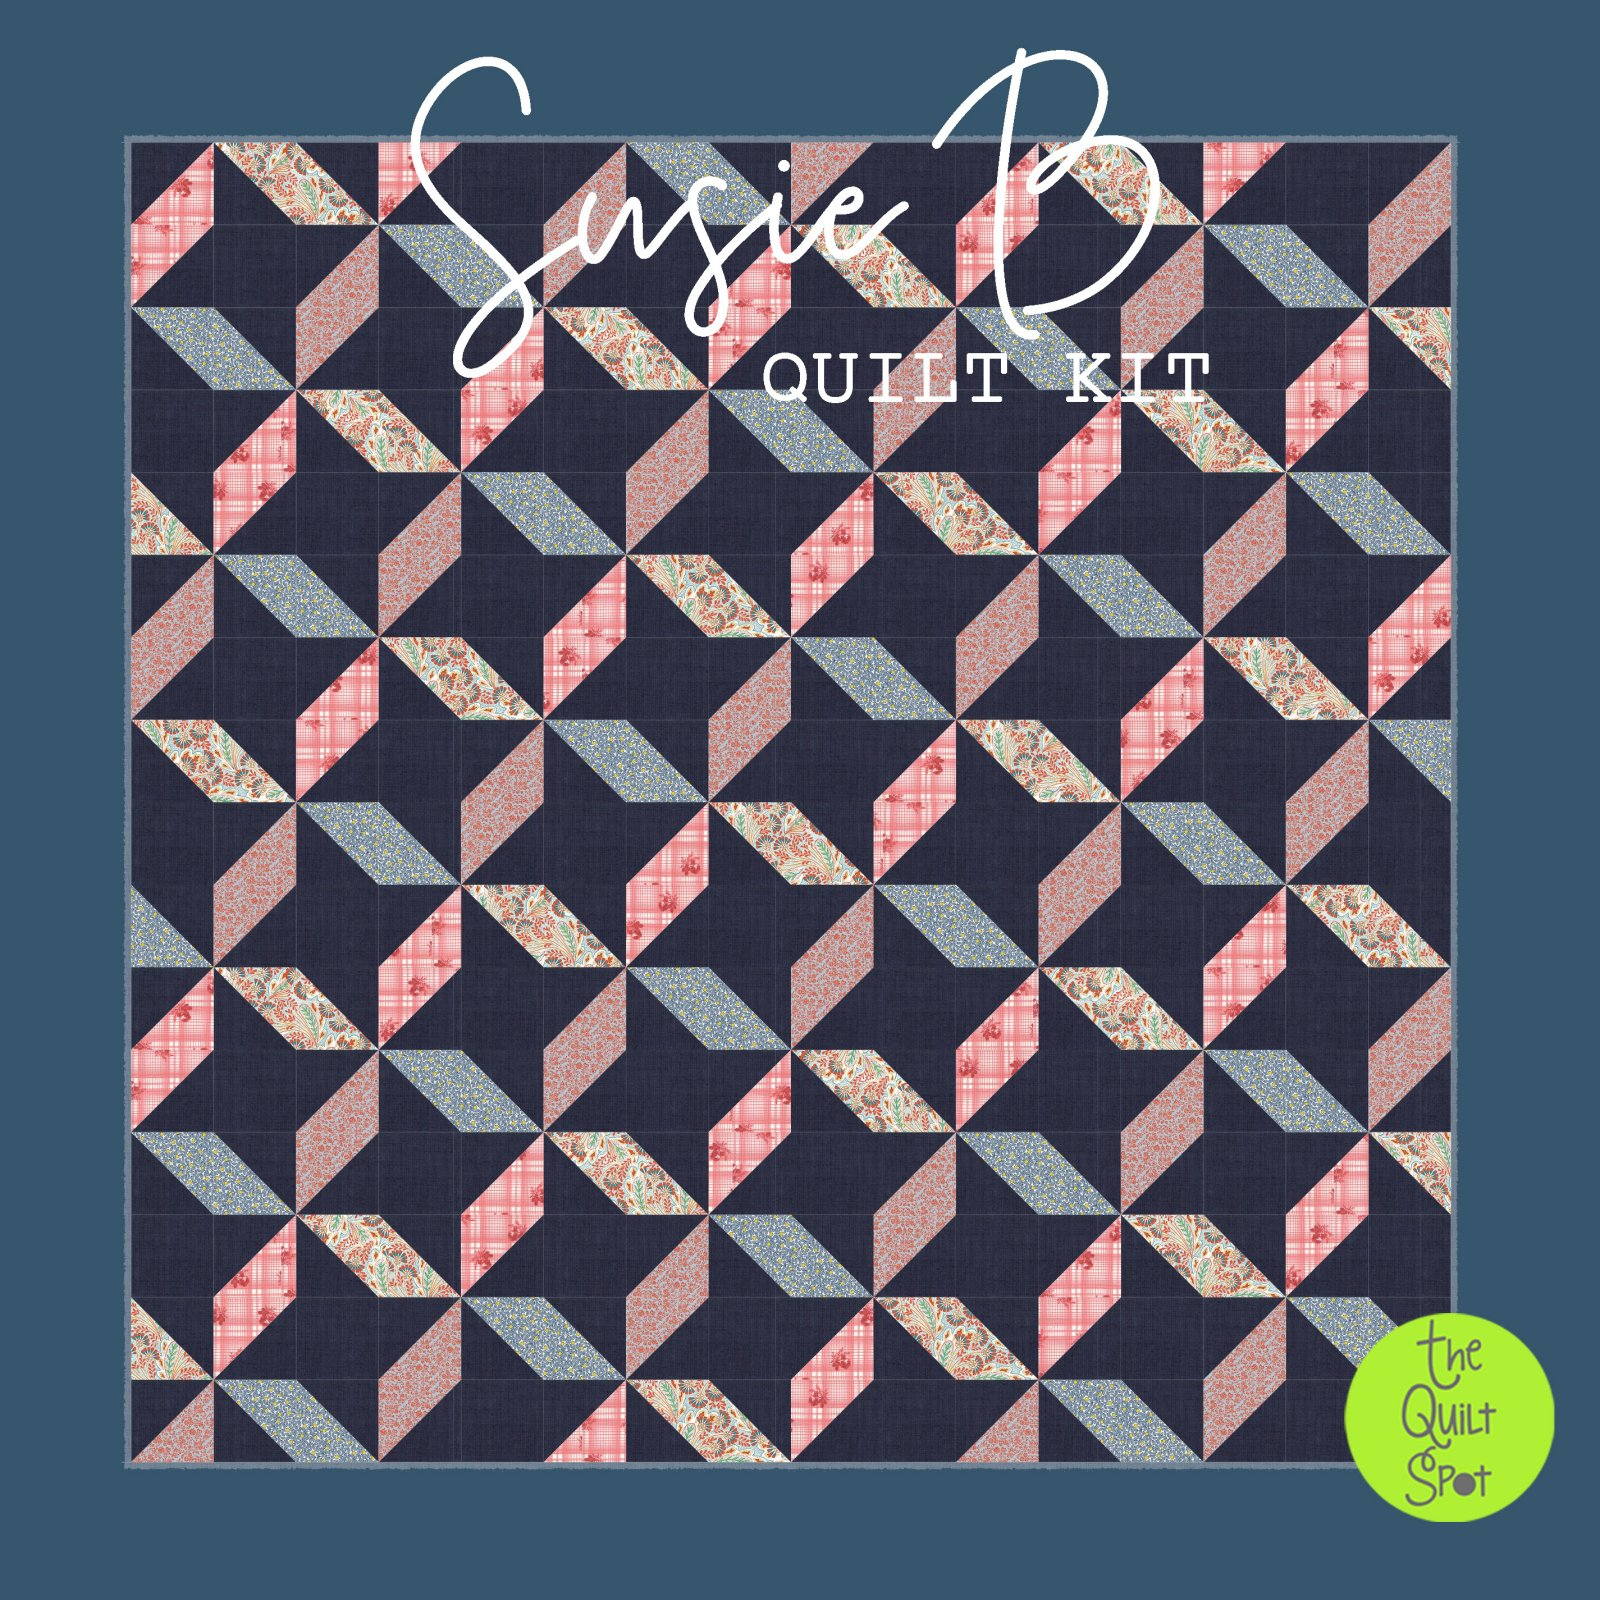 Susie B Fabric Kit - Fabric Only